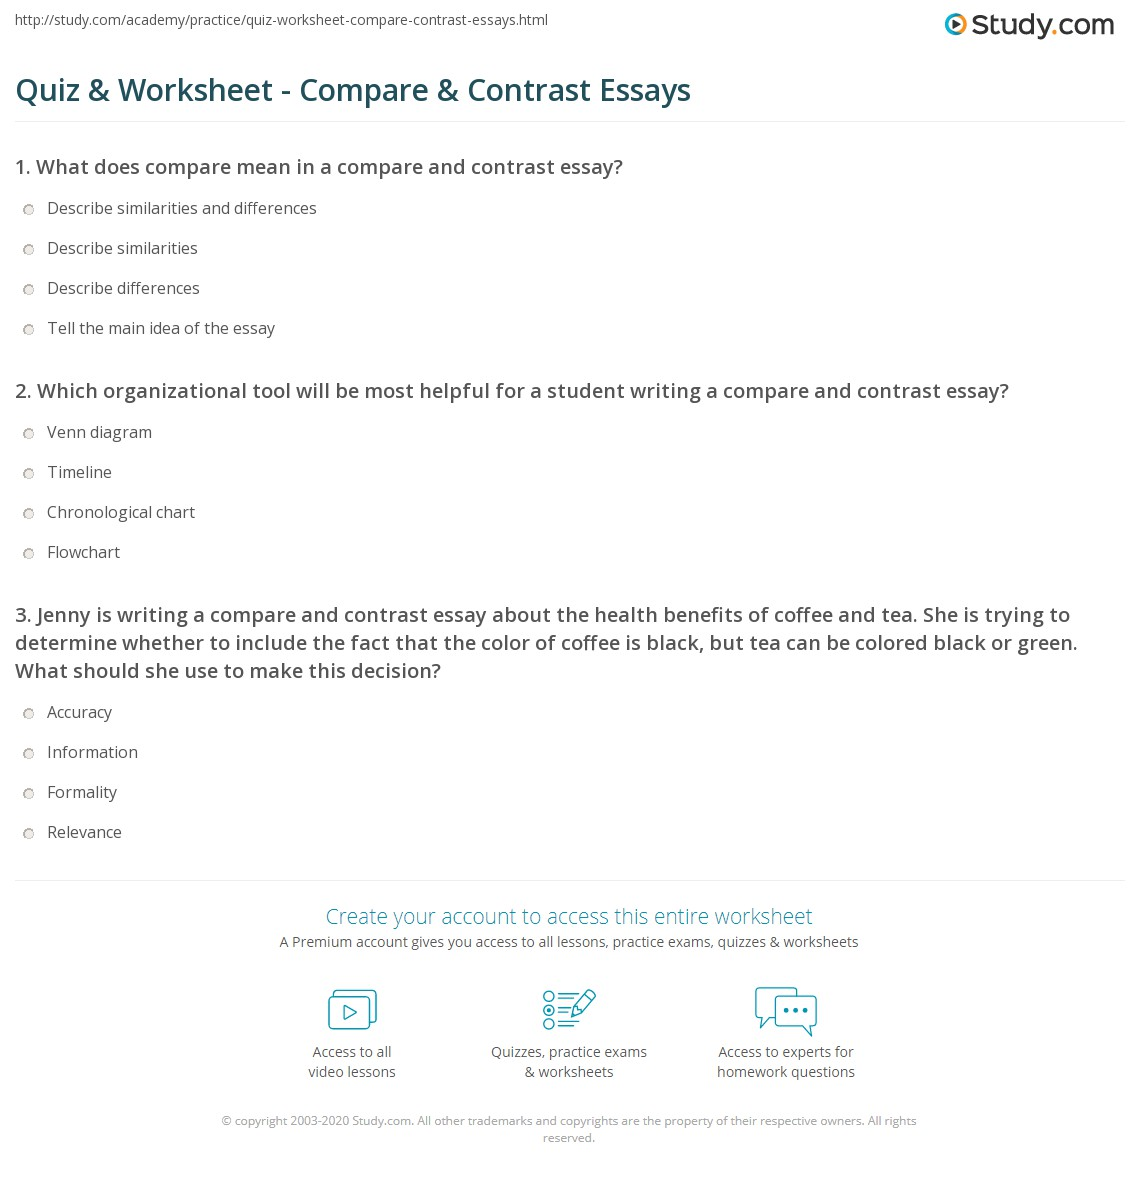 sample compare and contrast essay quiz worksheet compare contrast  quiz worksheet compare contrast essays com print compare contrast essay definition topics examples worksheet